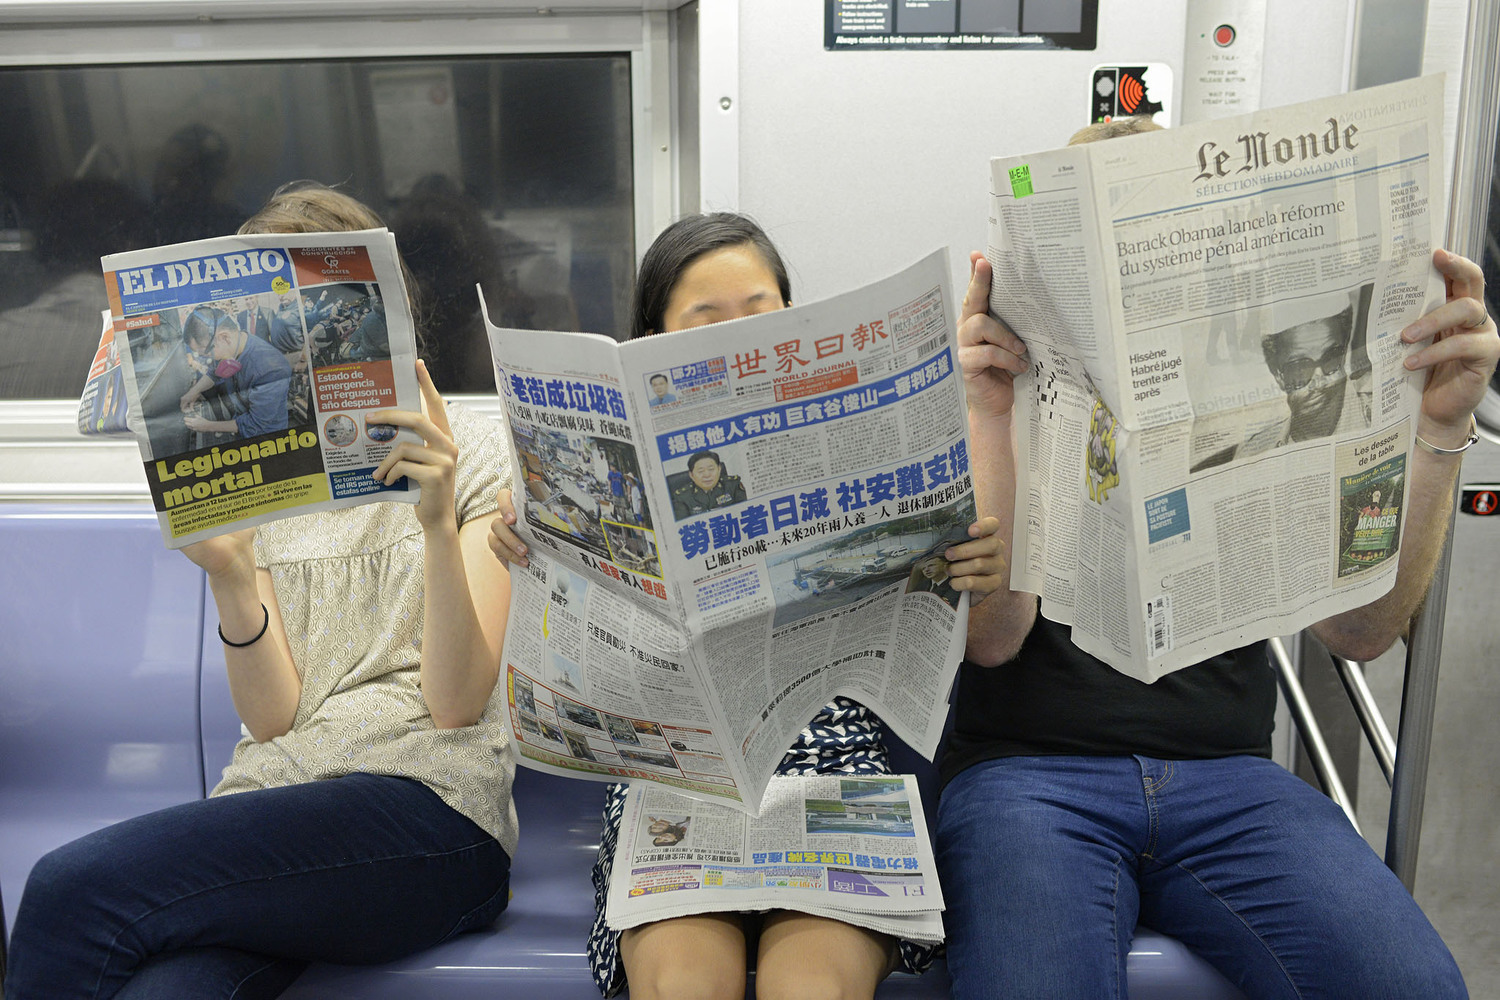 "People on Subway Reading Spanish, Chinese and French Newspapers | You can use this photo for non-commercial purposes if you give credit, under this <a href=""https://creativecommons.org/licenses/by-nc/3.0/us/"" rel=""nofollow"">Creative Commons license</a>. For-profit media organizations also may use this, but as editorial content only (as illustrations for stories, for example, but not as advertising). Credit must read: Richard Yeh / WNYC  We'd love to know if you're using this photo - send us an email (jkeefe@wnyc.org)!"